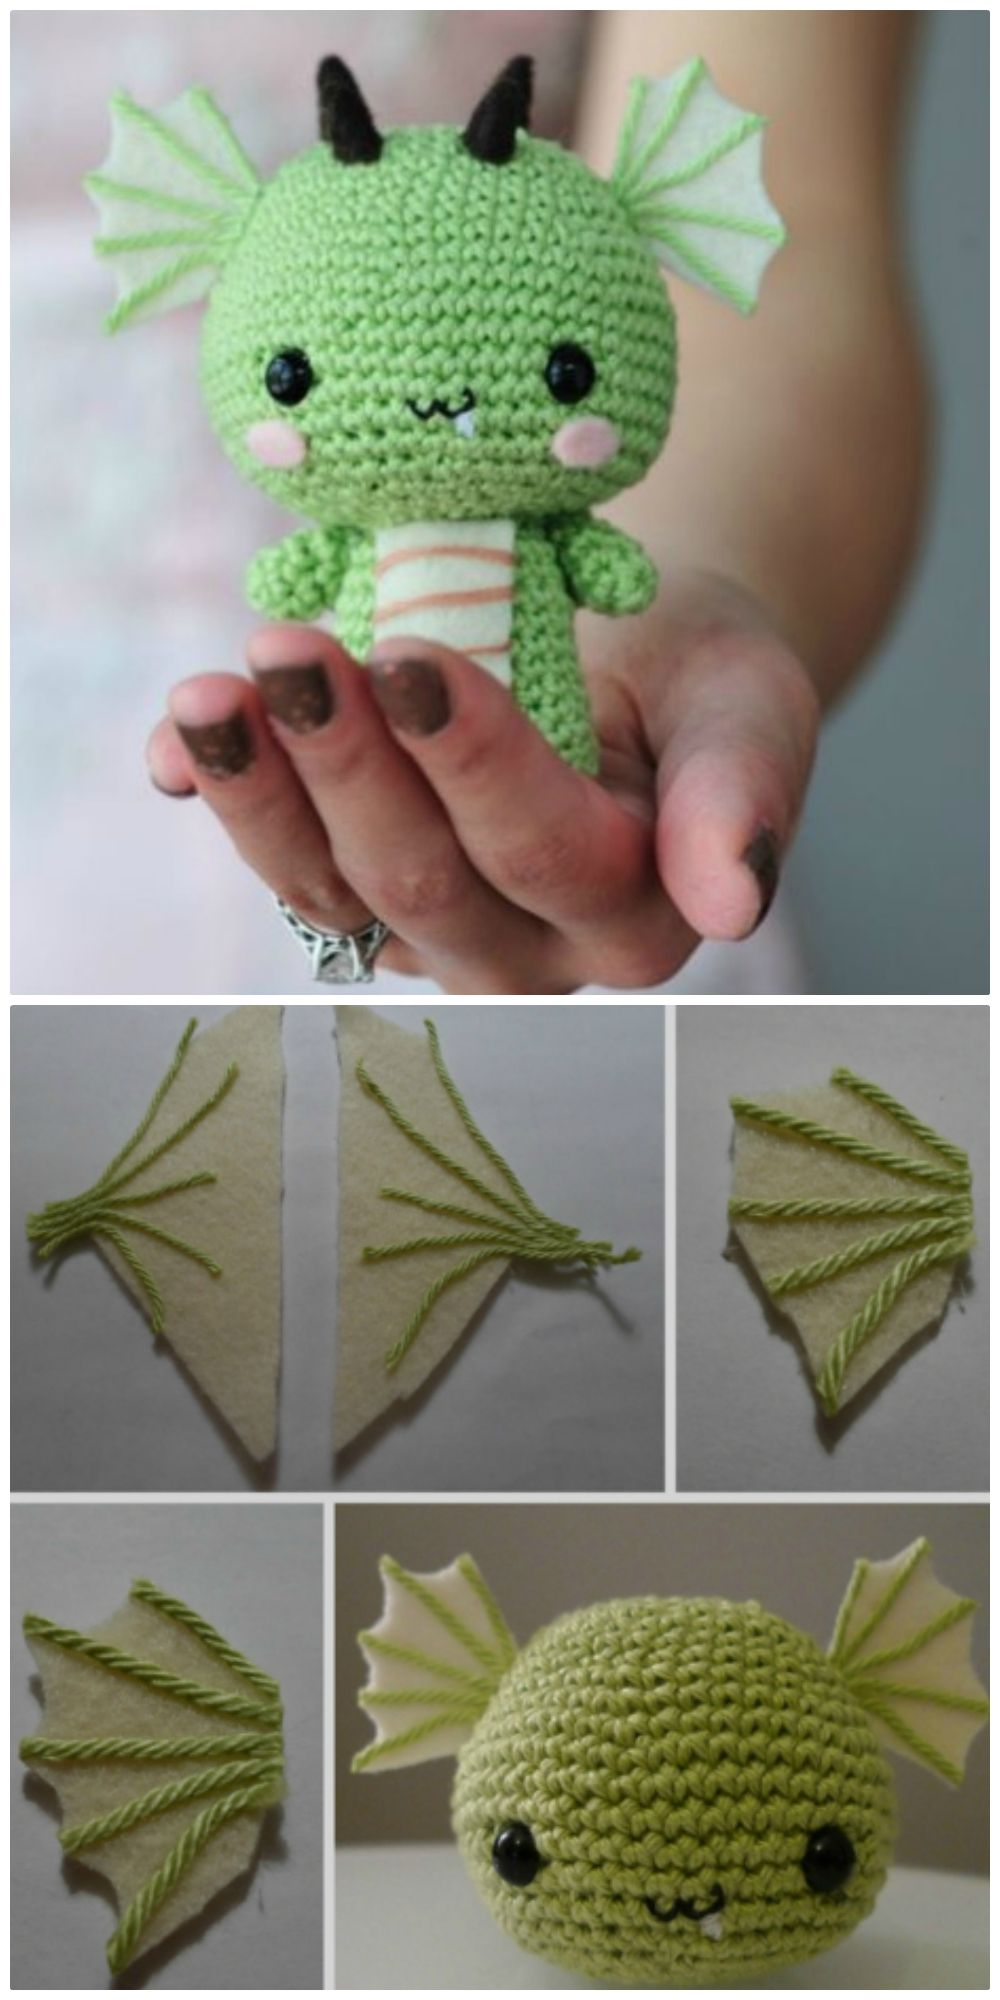 Crochet Dragon Patterns - Free And Paid - The WHOo